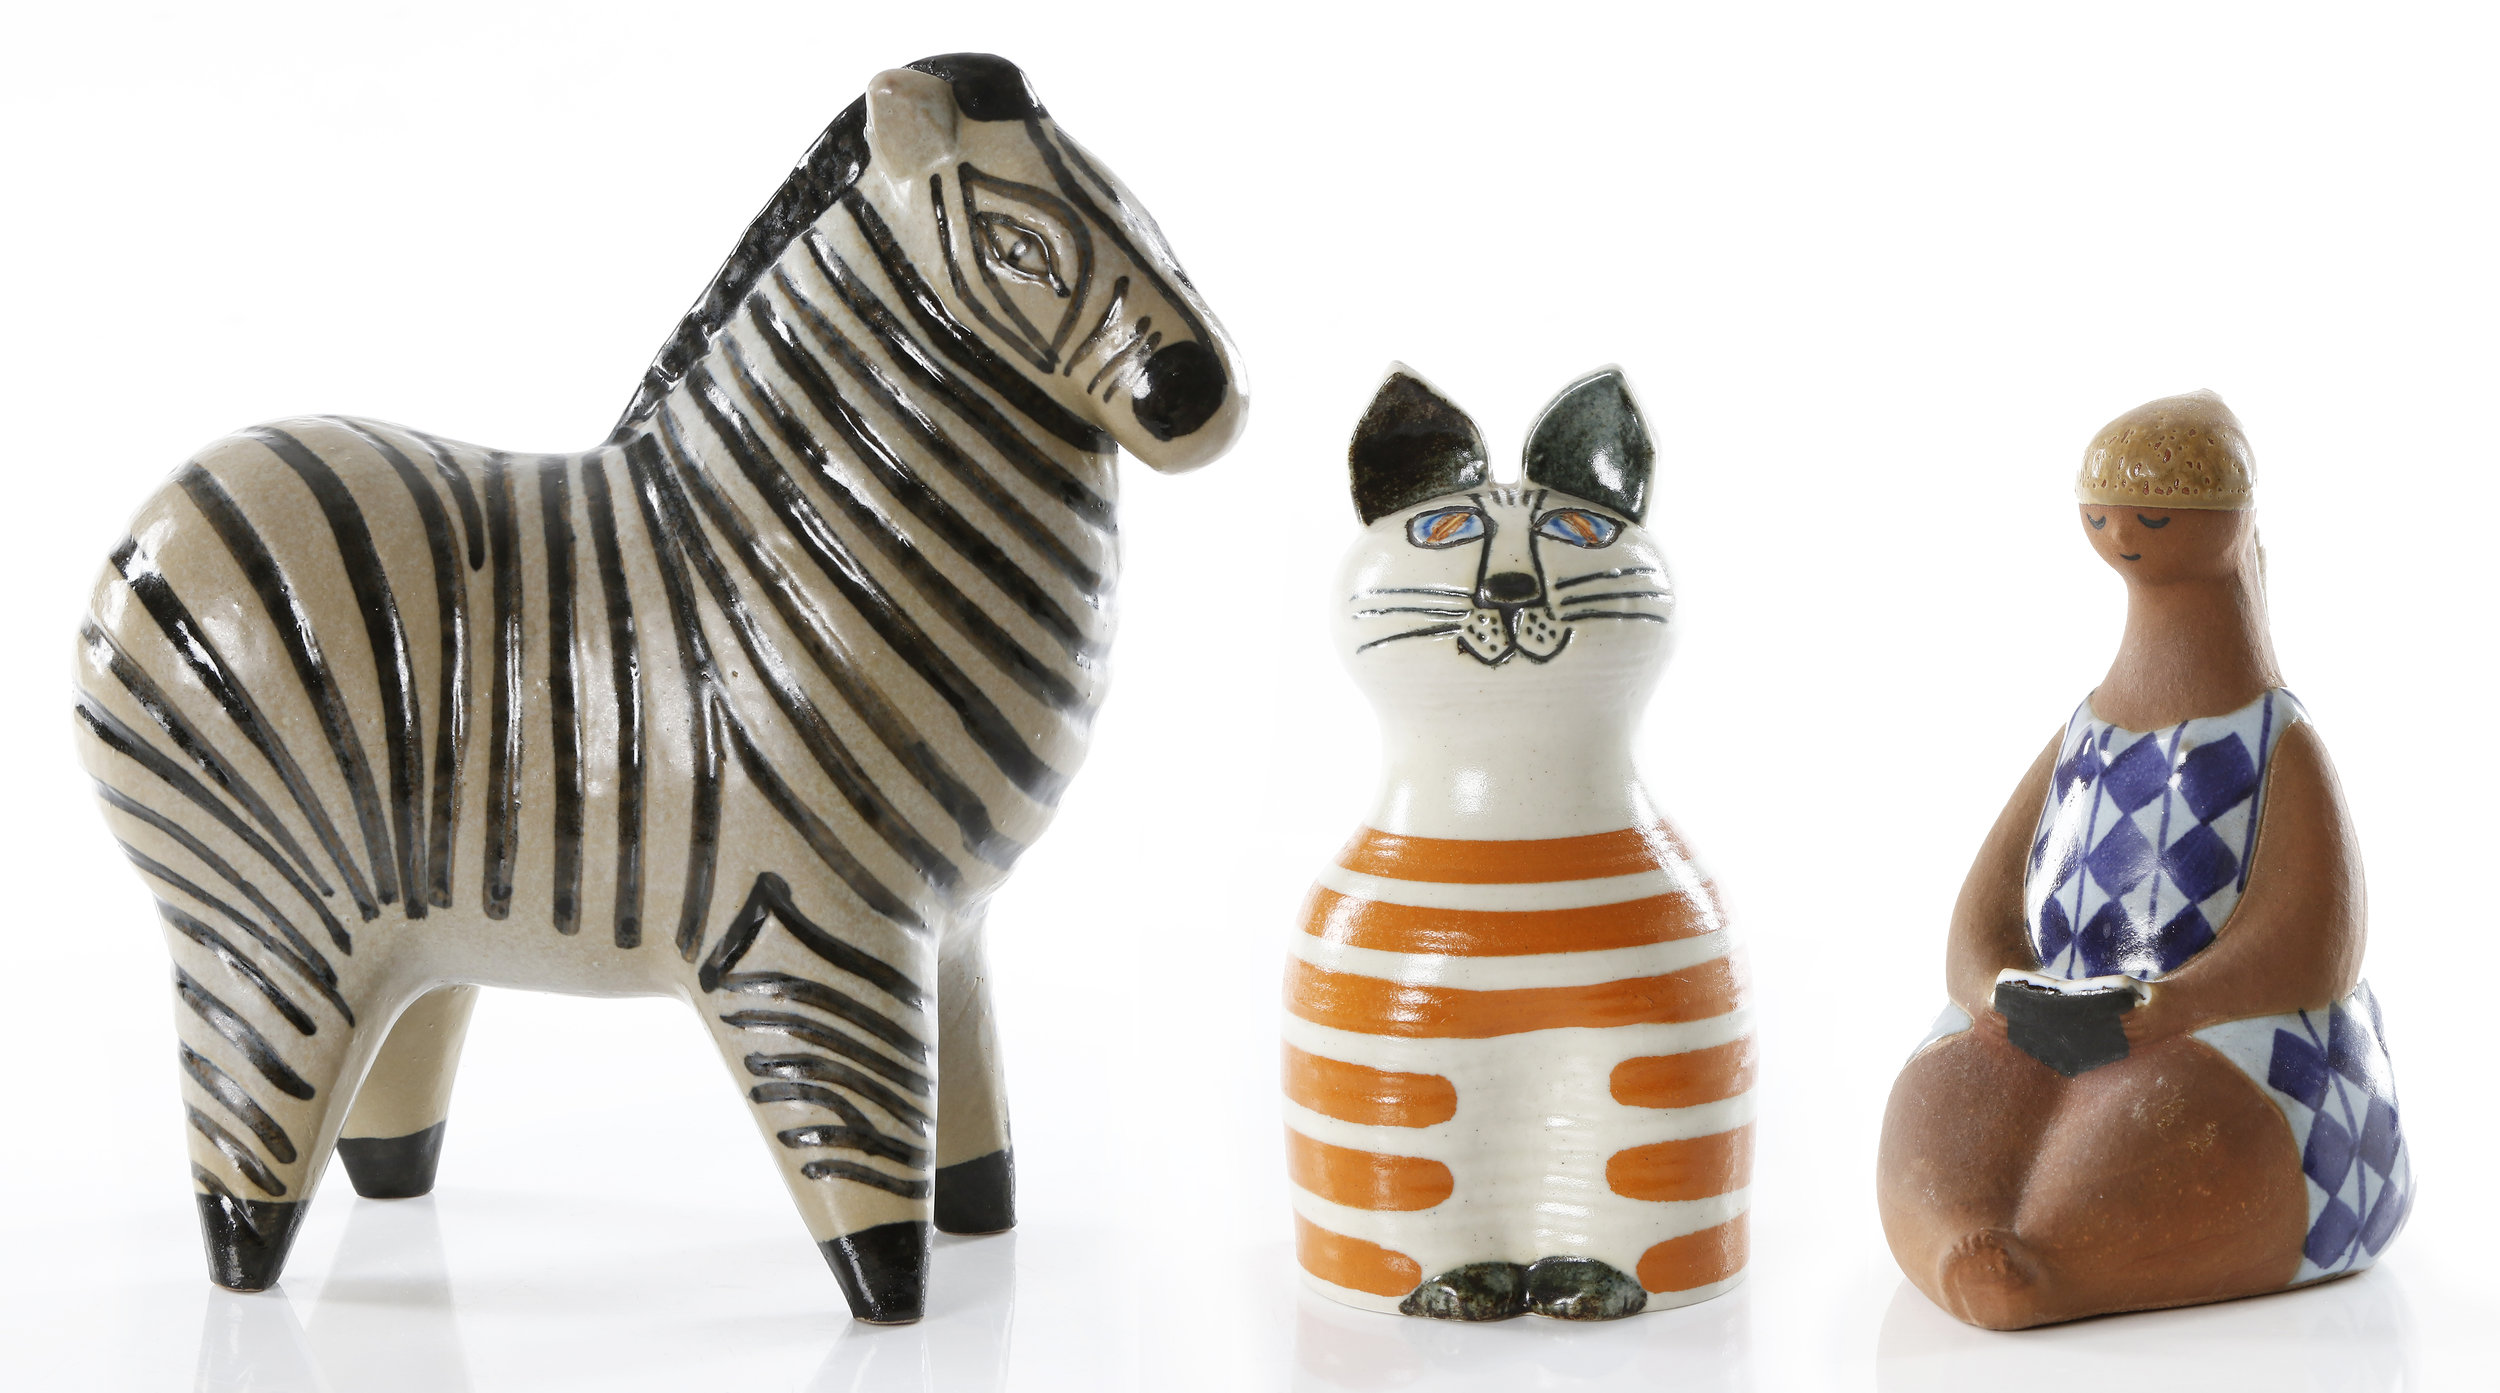 Lisa Larson's playful ceramic figures are always attractive at auction and are sought after by collectors all over the world.